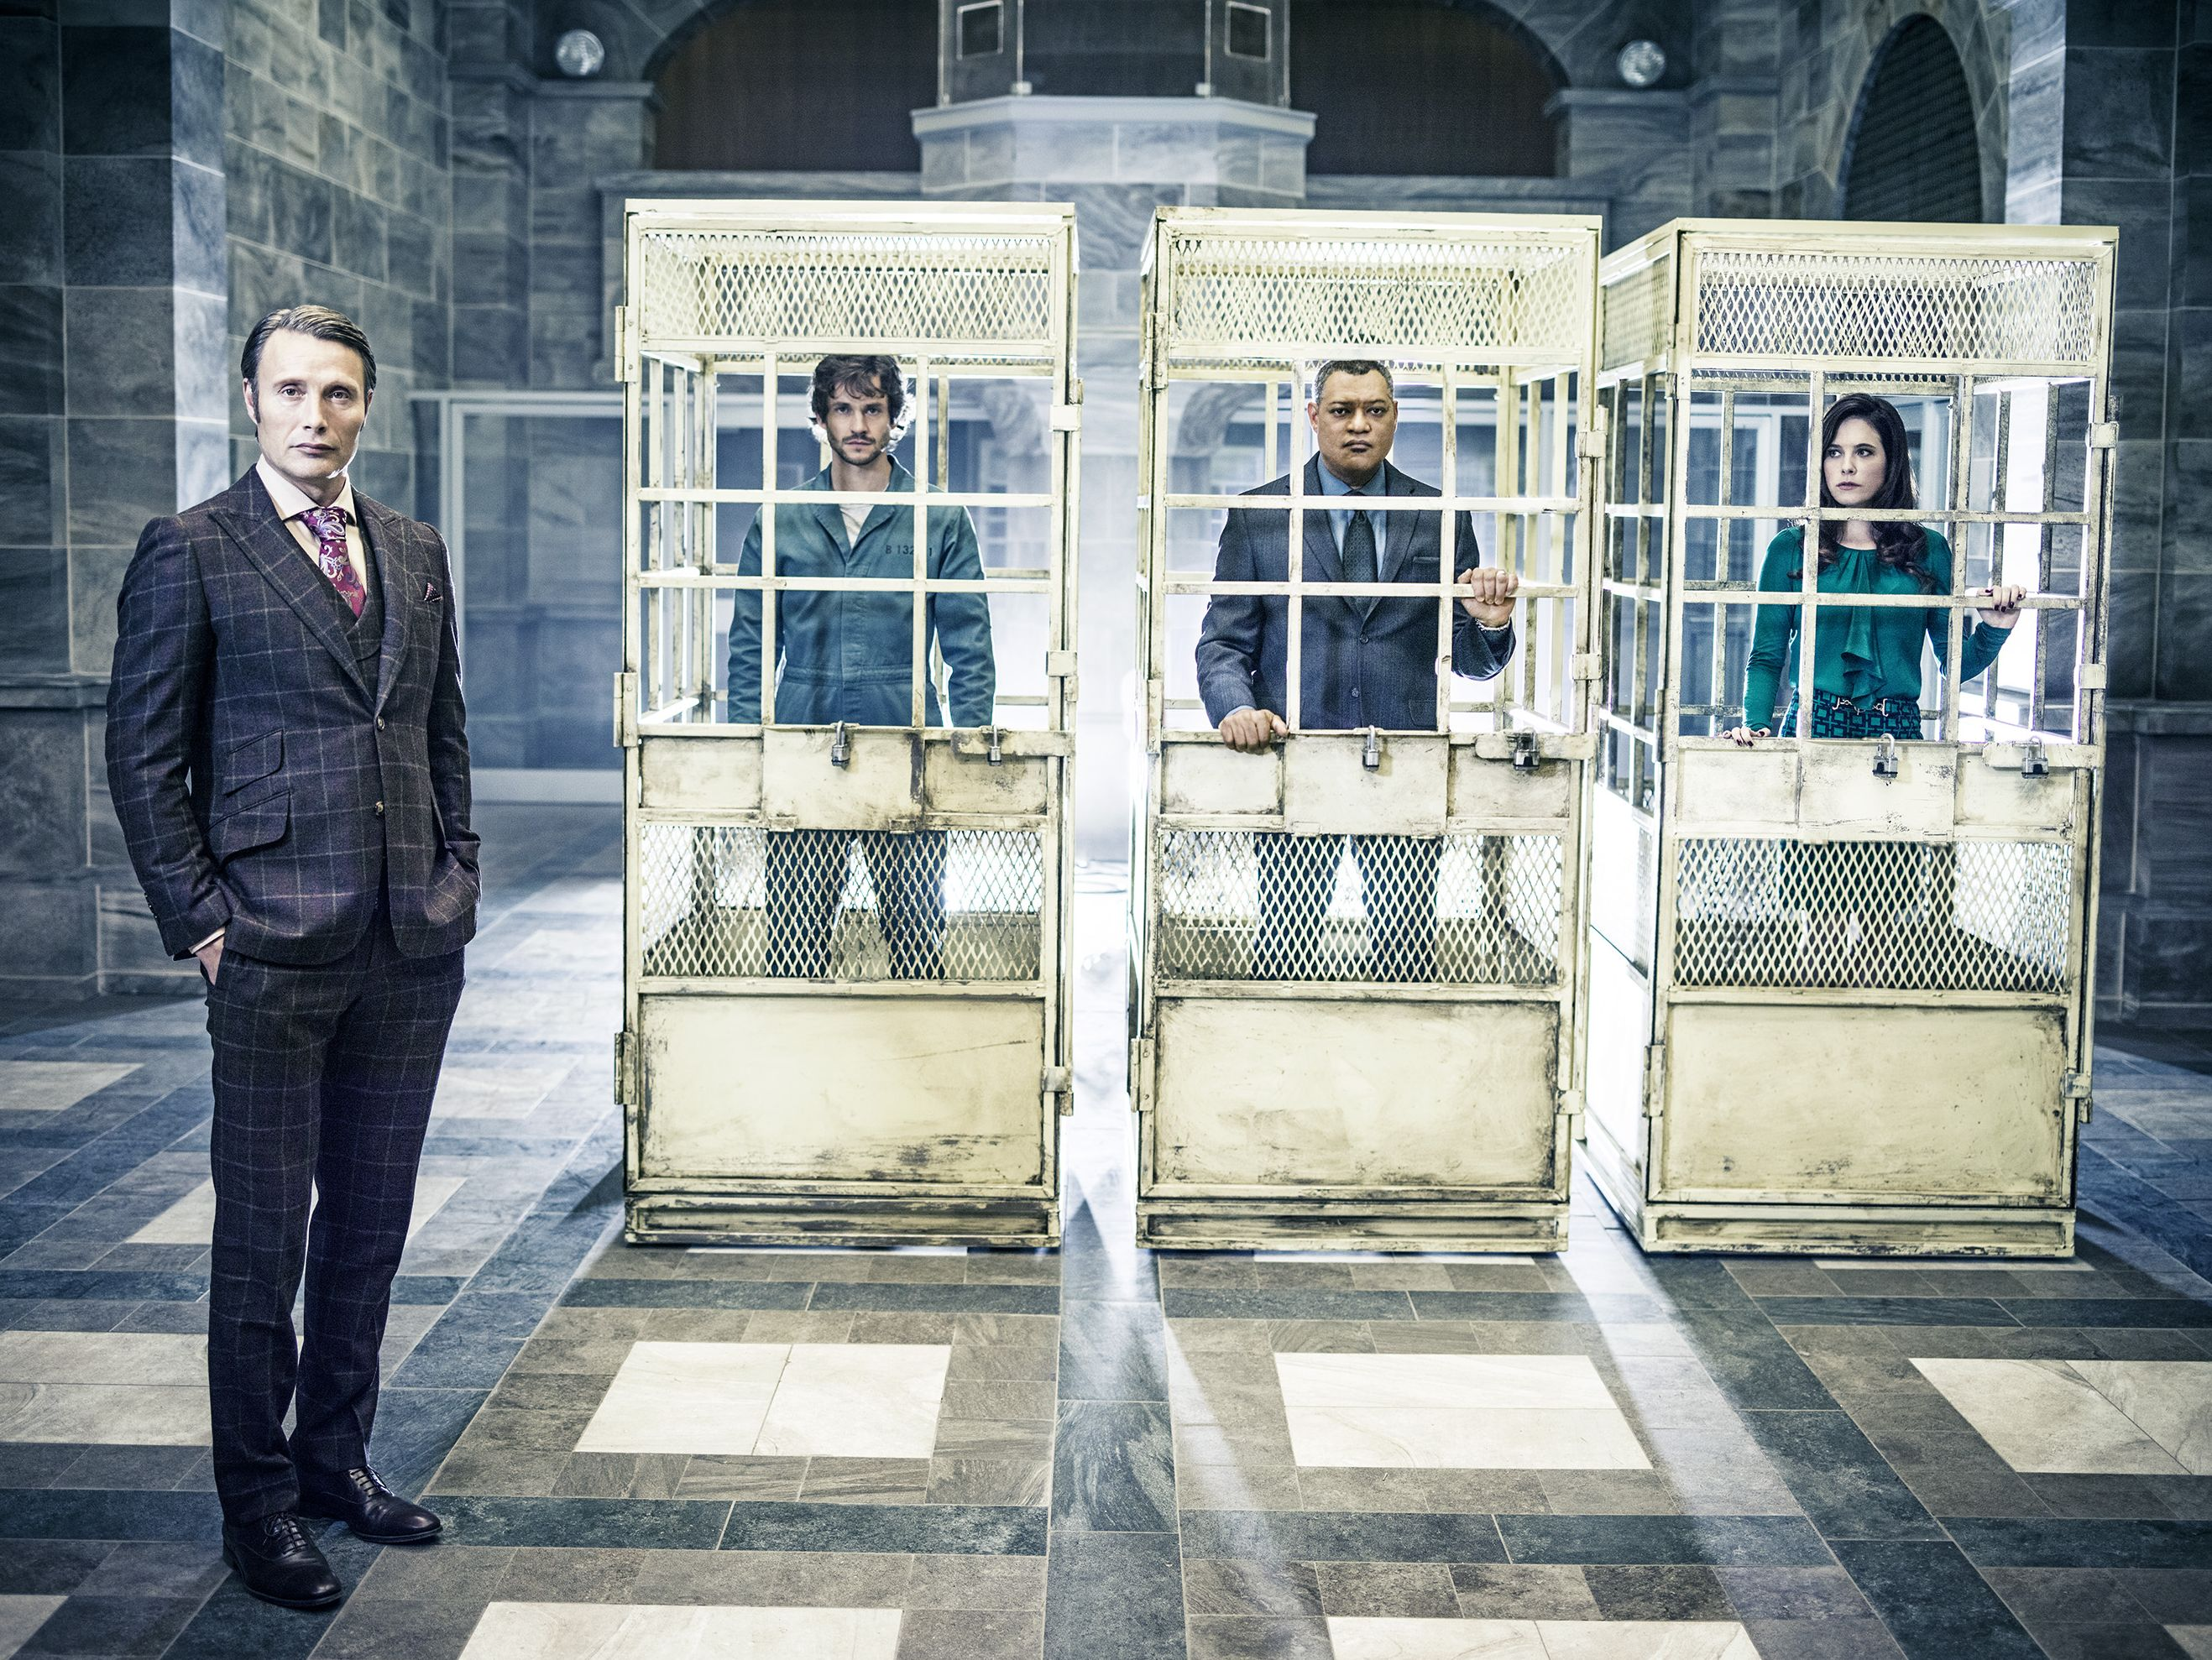 Mads Mikkelsen keeps his colleagues in a box for season 2 of